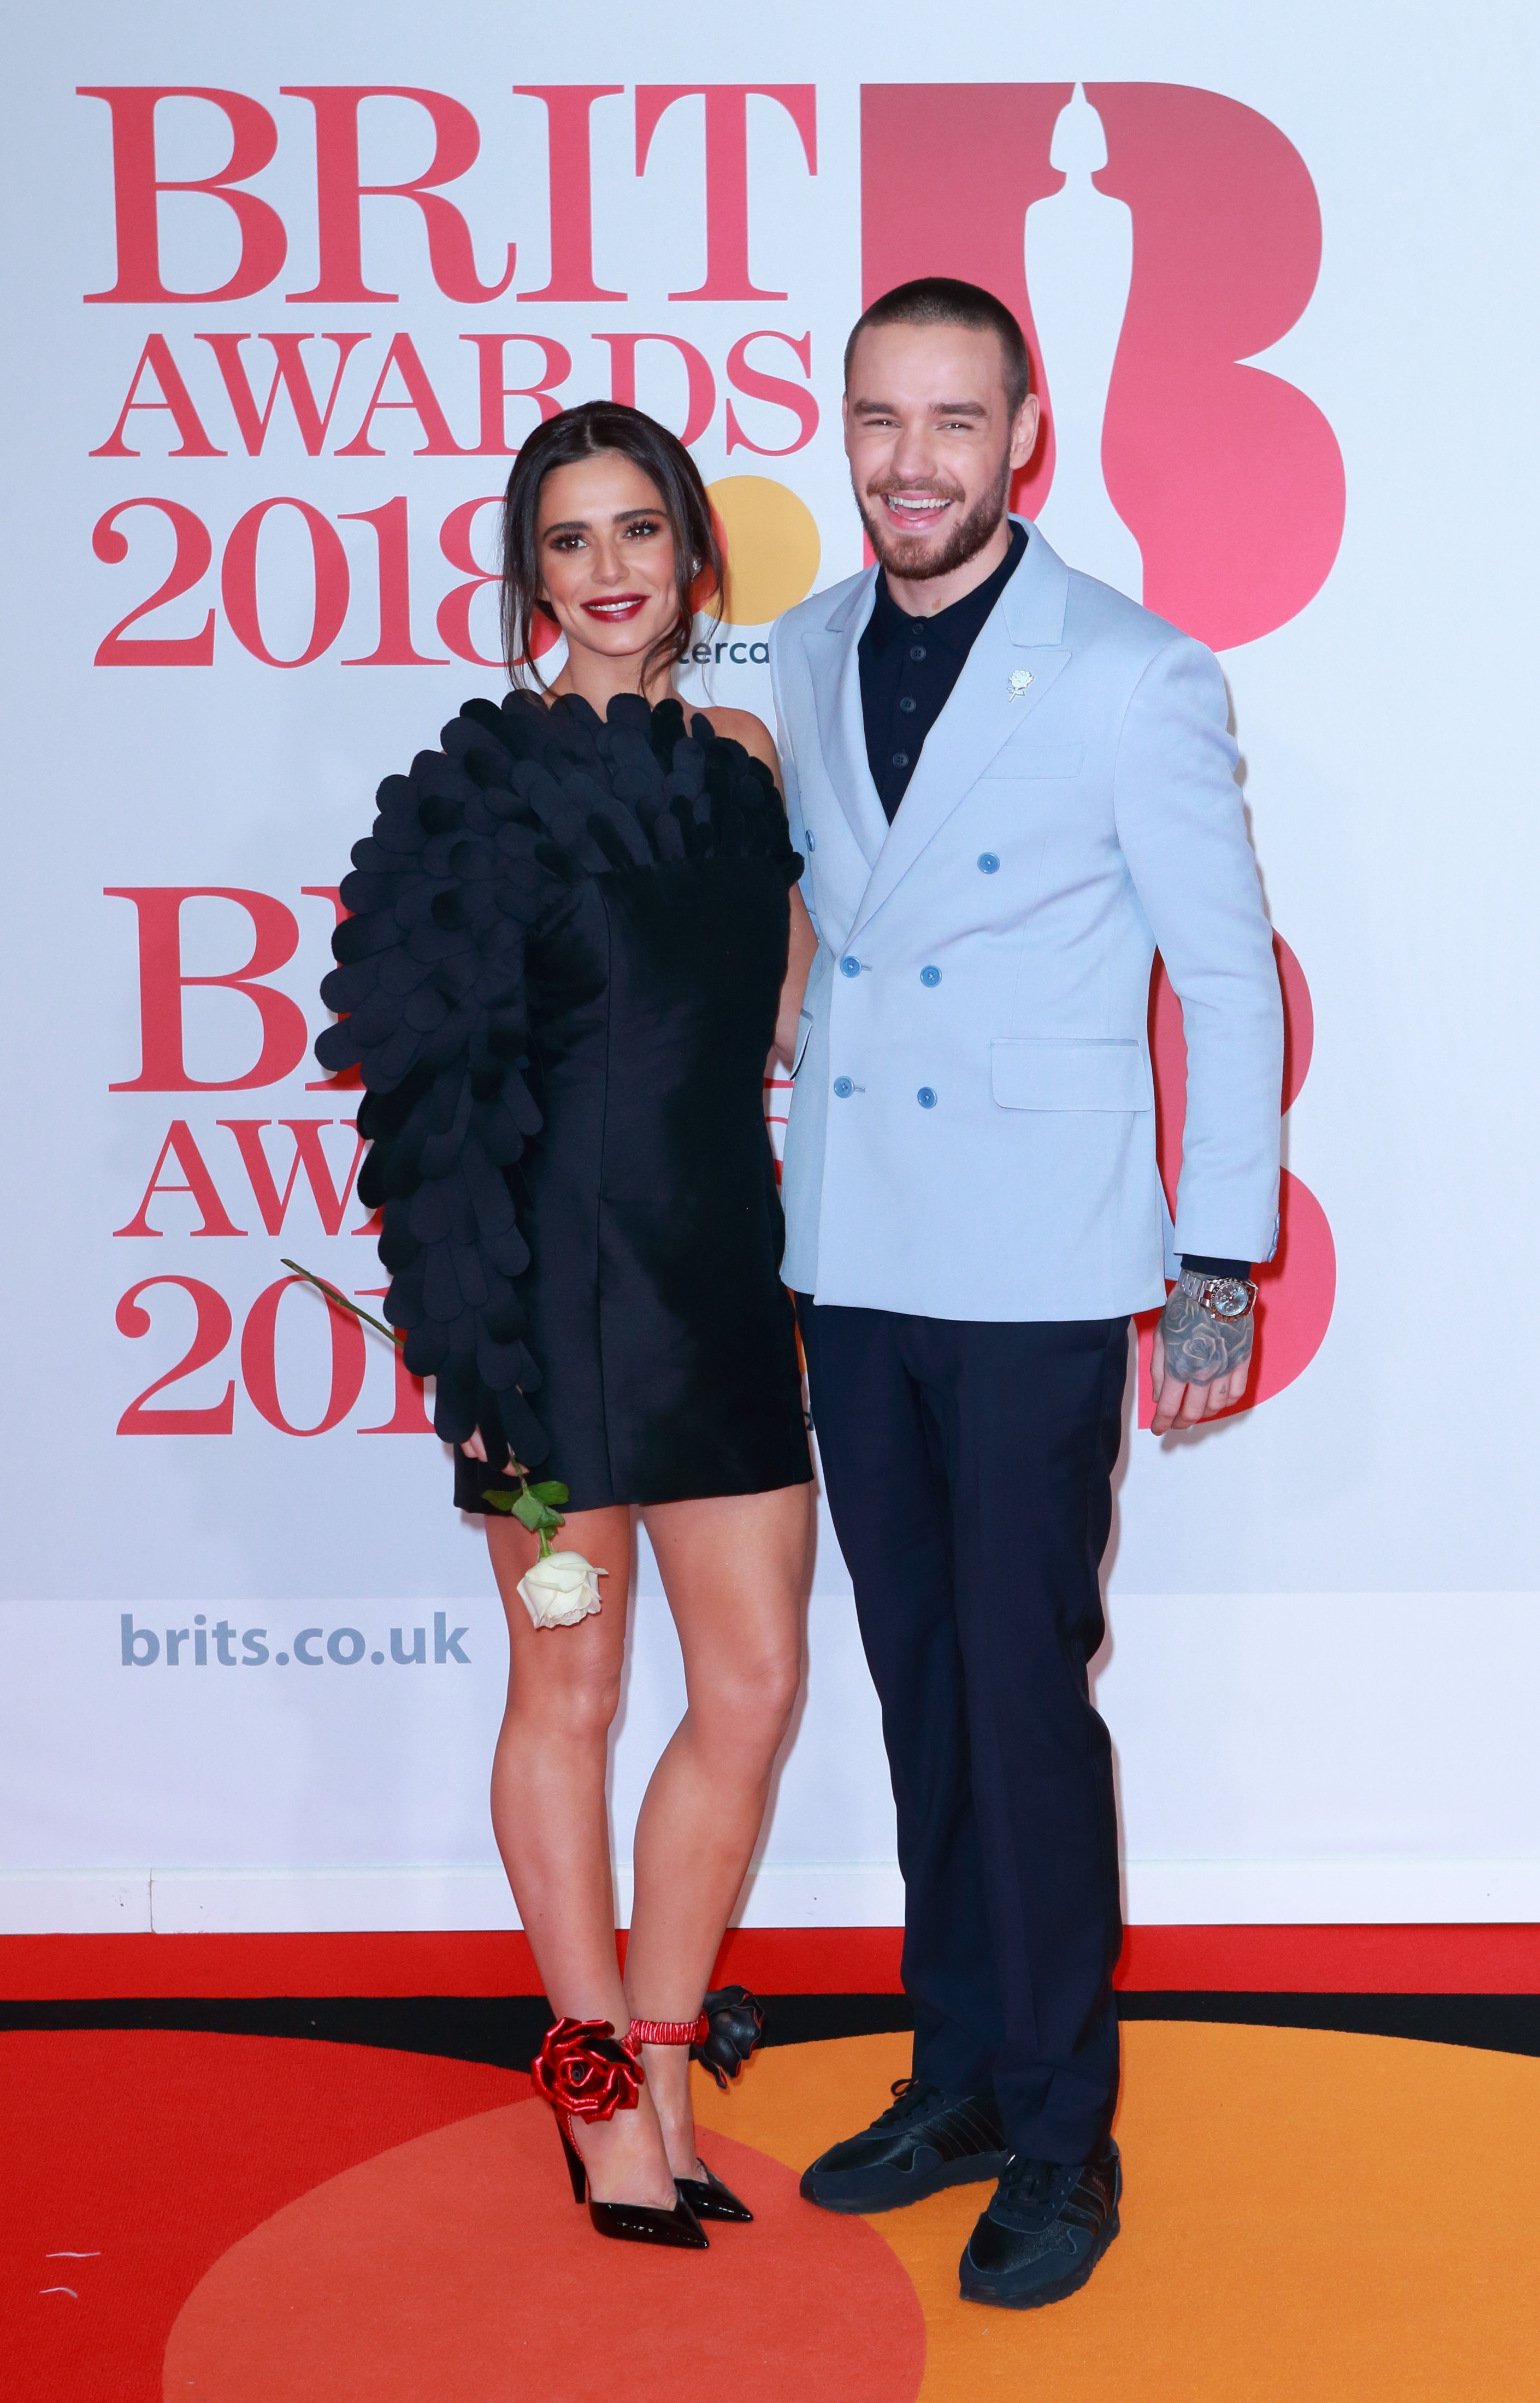 Cheryl Cole and Liam Payne arrive on the red carpet for The BRIT Awards 2018 at The O2 Arena in London, England.  <P> Pictured: Cheryl Cole and Liam Payne <B>Ref: SPL1662519  210218  </B><BR/> Picture by: Flynet - Splash News<BR/> </P><P> <B>Splash News and Pictures</B><BR/> Los Angeles:	310-821-2666<BR/> New York:	212-619-2666<BR/> London:	870-934-2666<BR/> <span id=